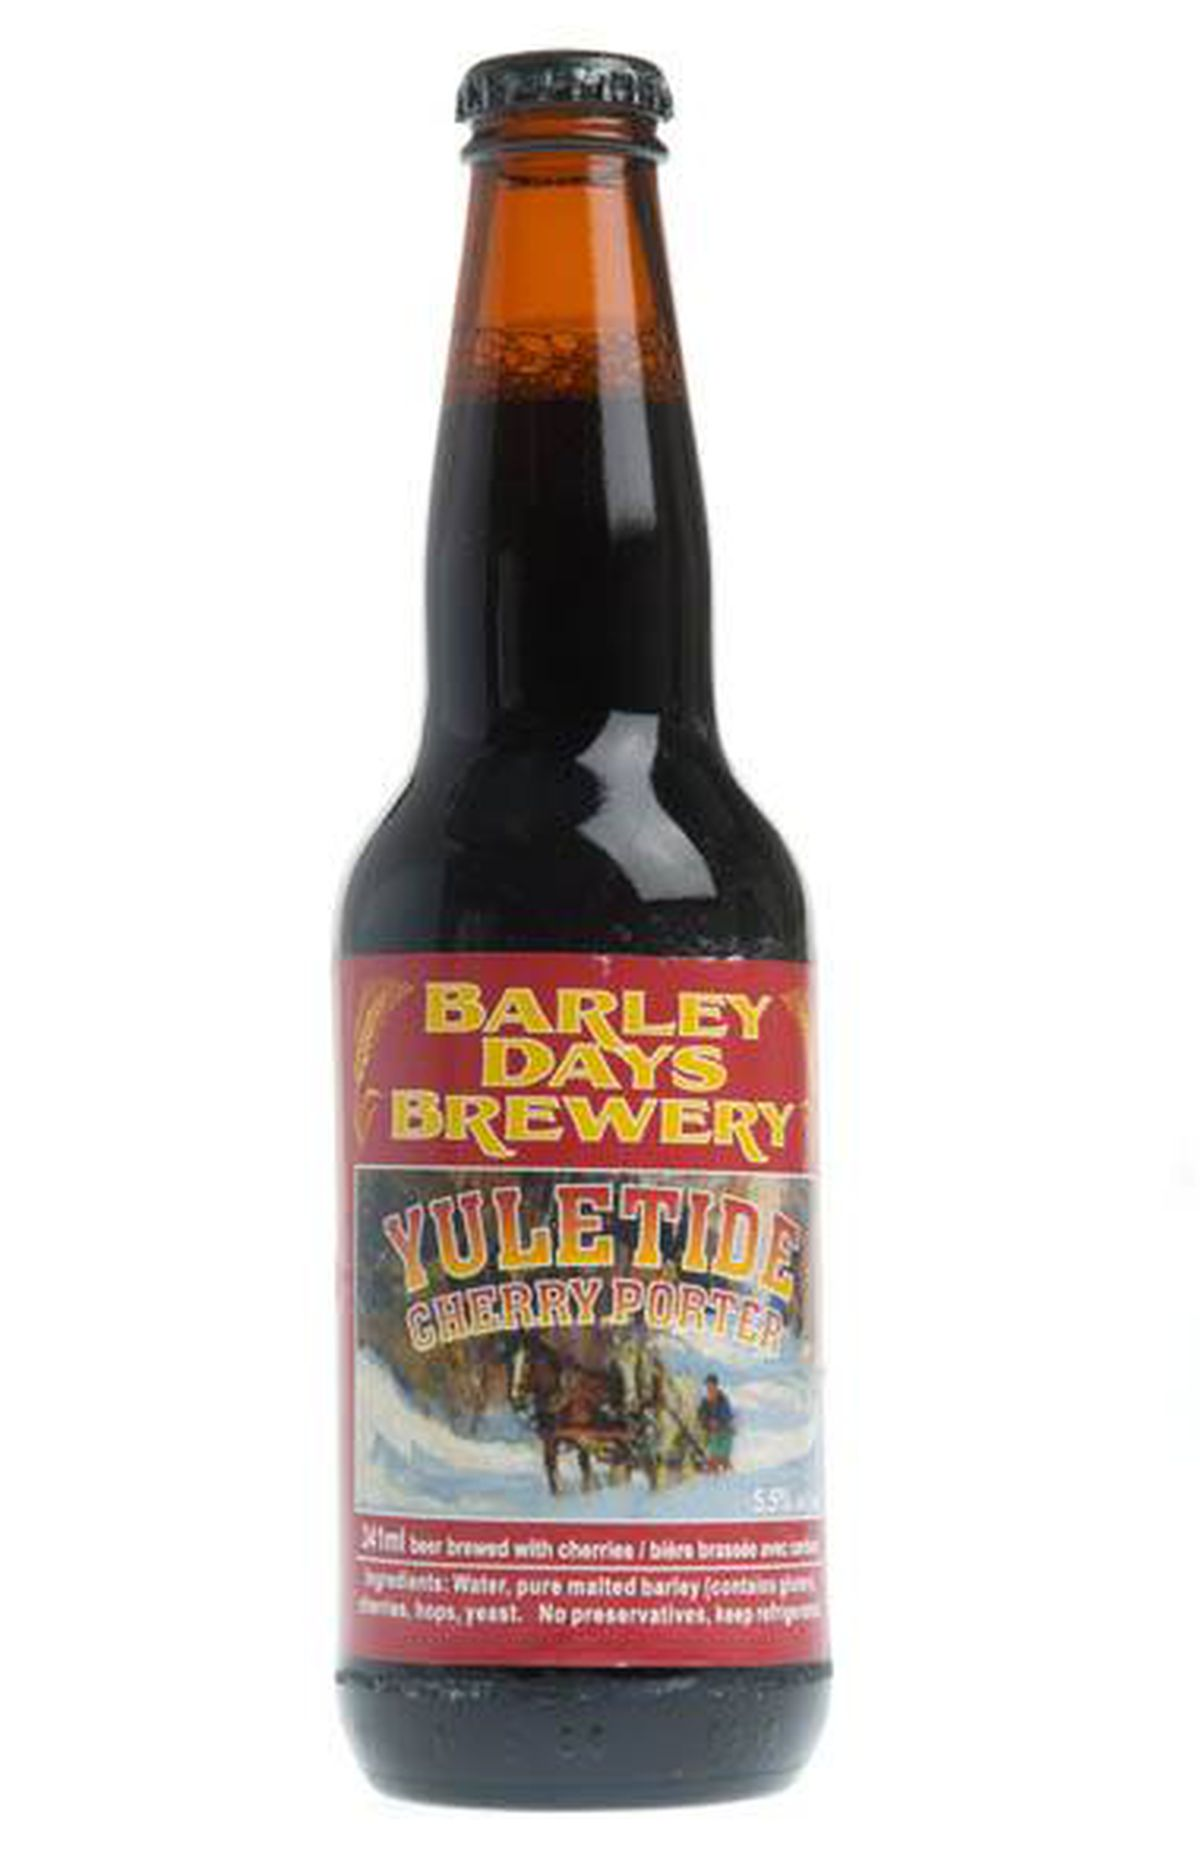 Barley Days cherry porter: a harbinger of flavoured spirits yet to come?